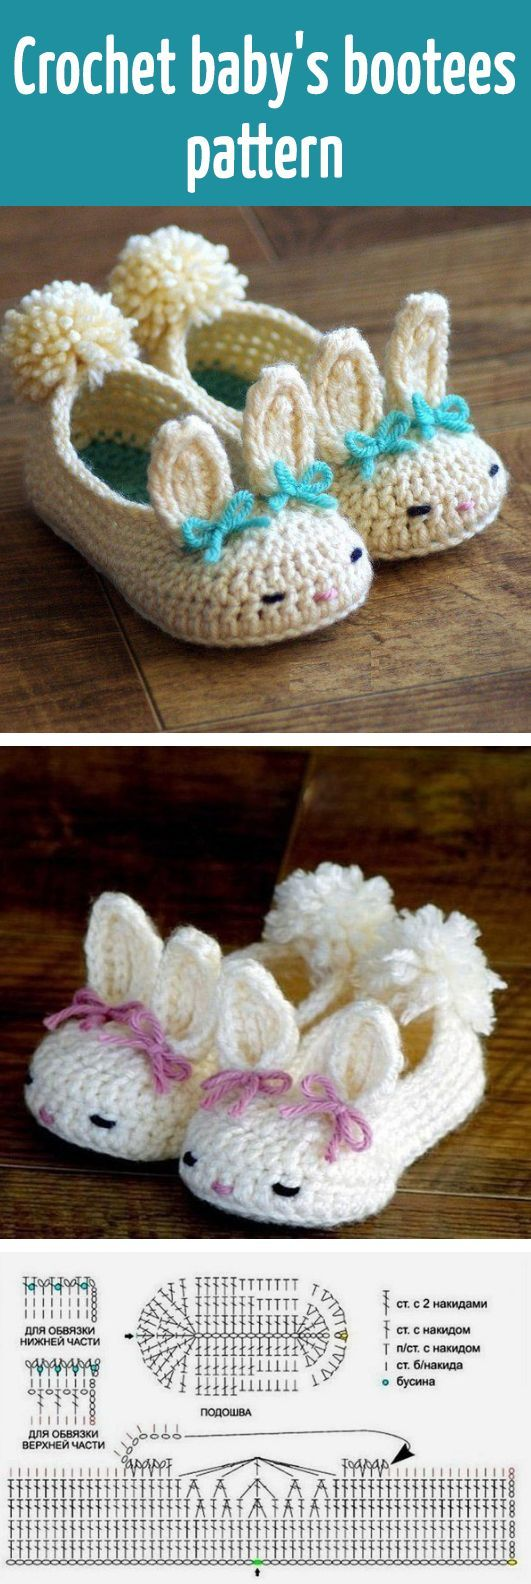 Crochet baby's bootees pattern: